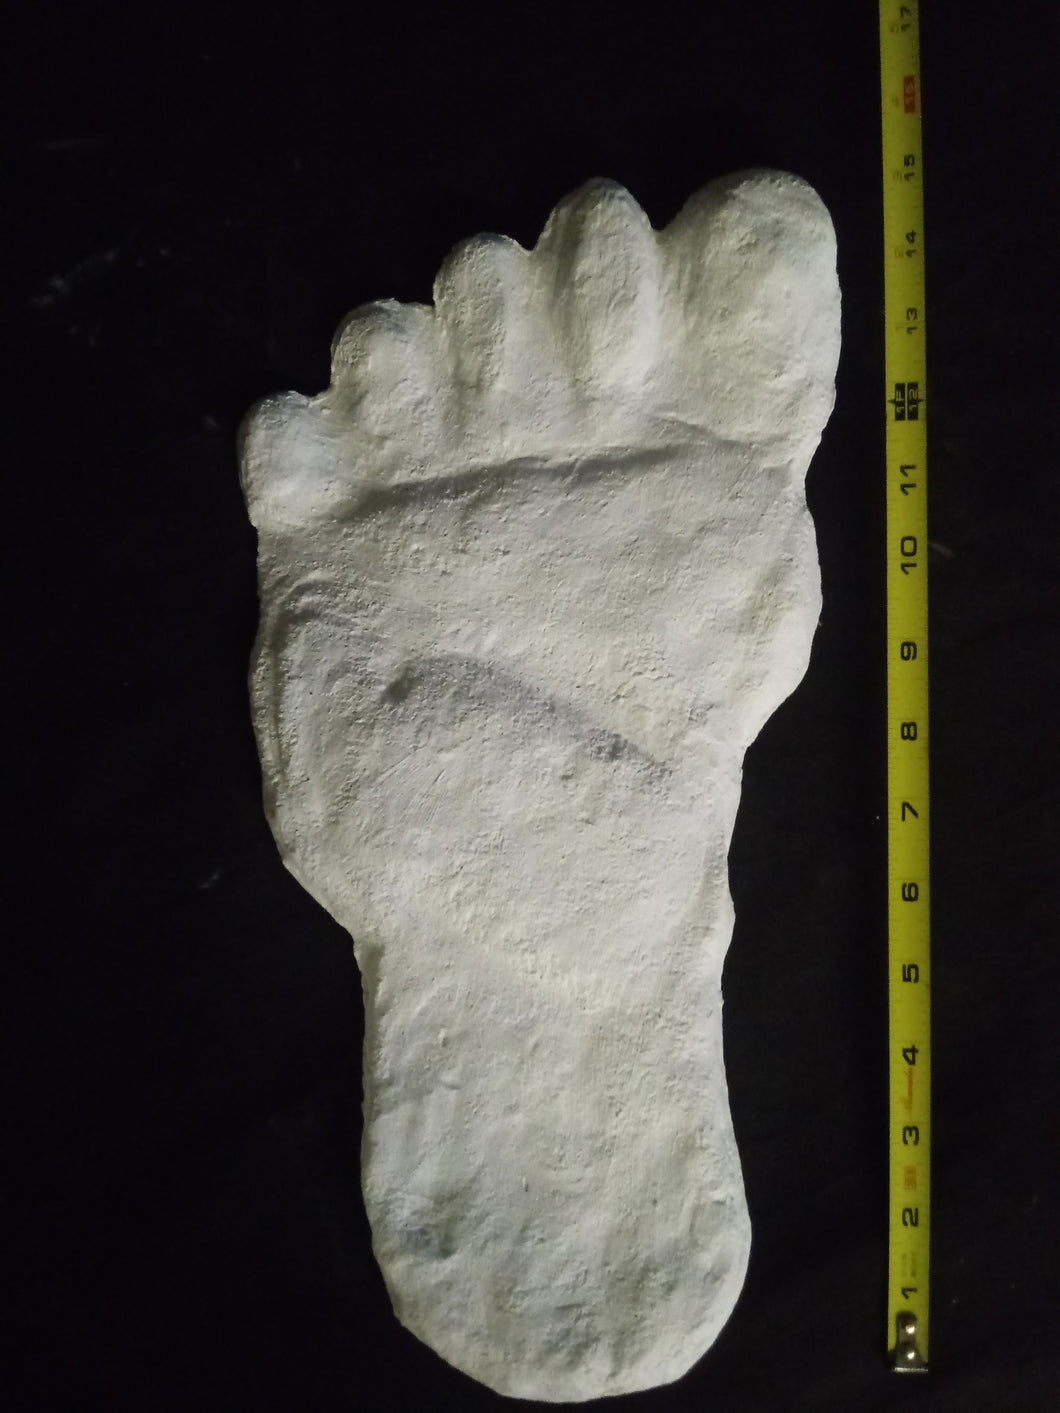 19xx Almasty Almas Footprint track cast from Russia Cryptozoology HUGE ALMASTY ALMAS Footprint BIGFOOT